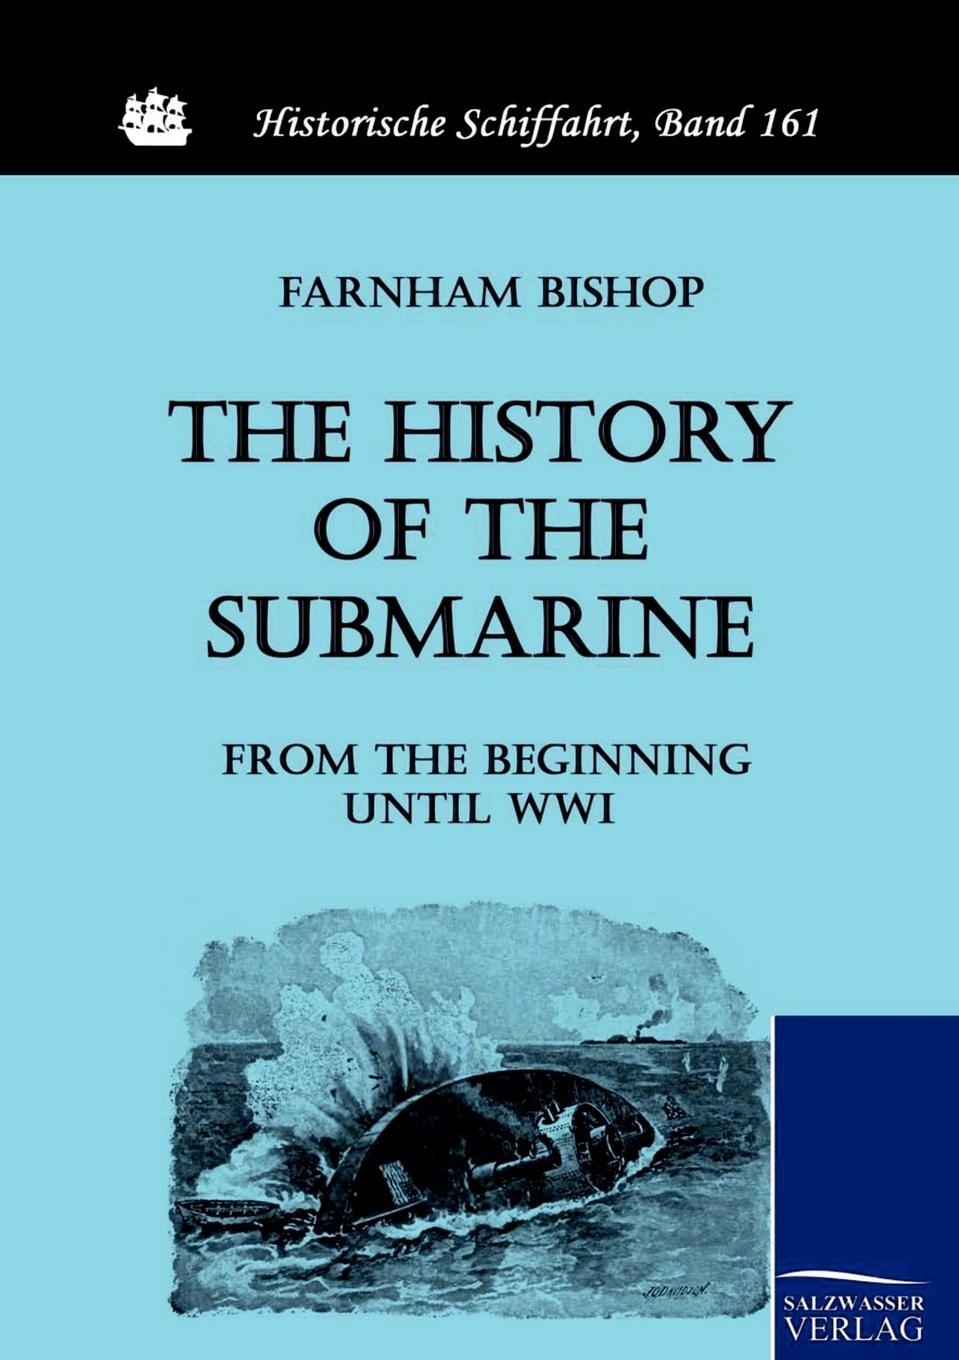 The History of the Submarine from the Beginning until WWI. Farnham Bishop